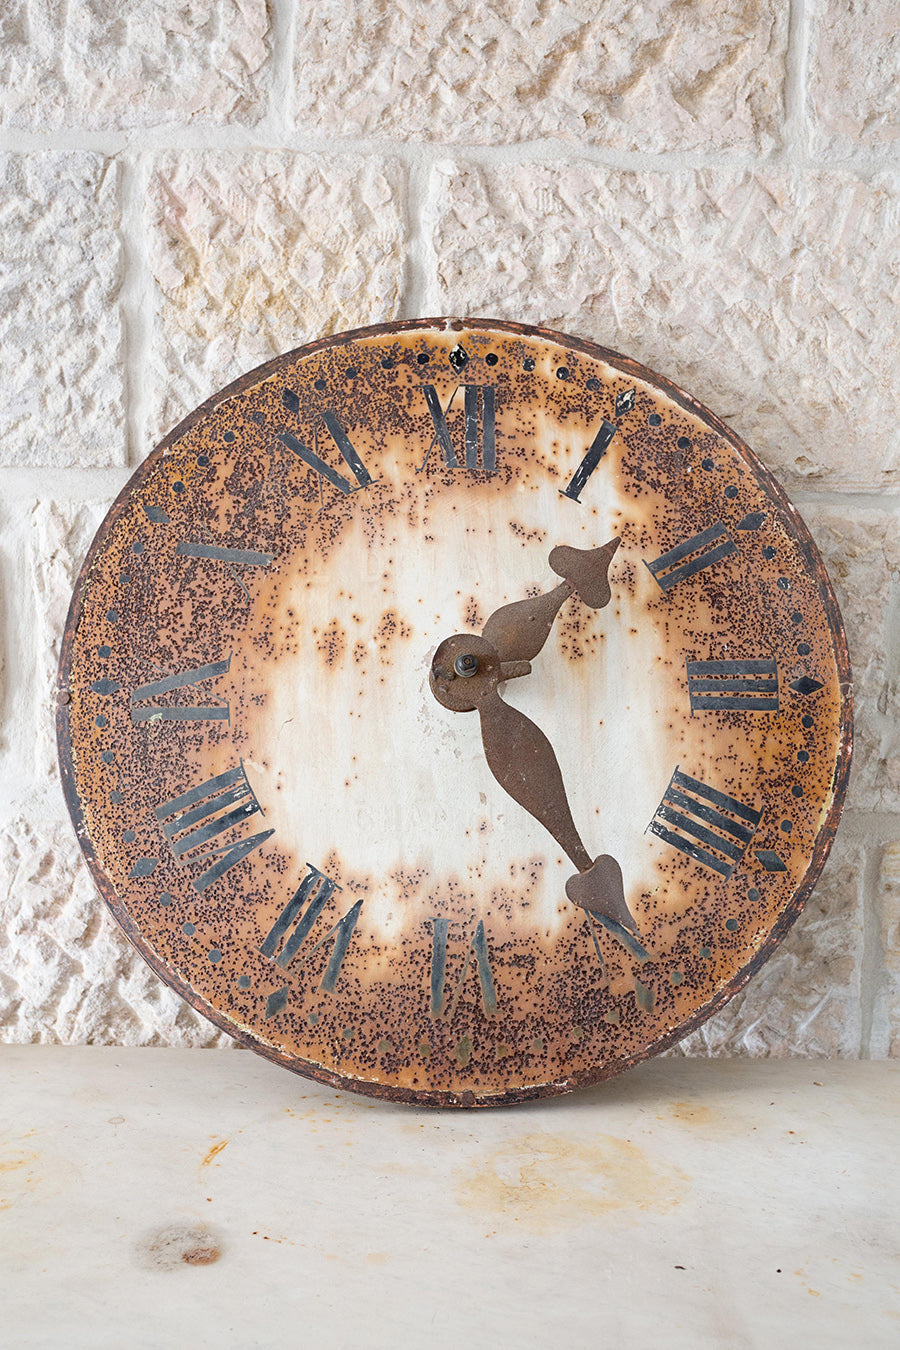 Small 19th century clock face